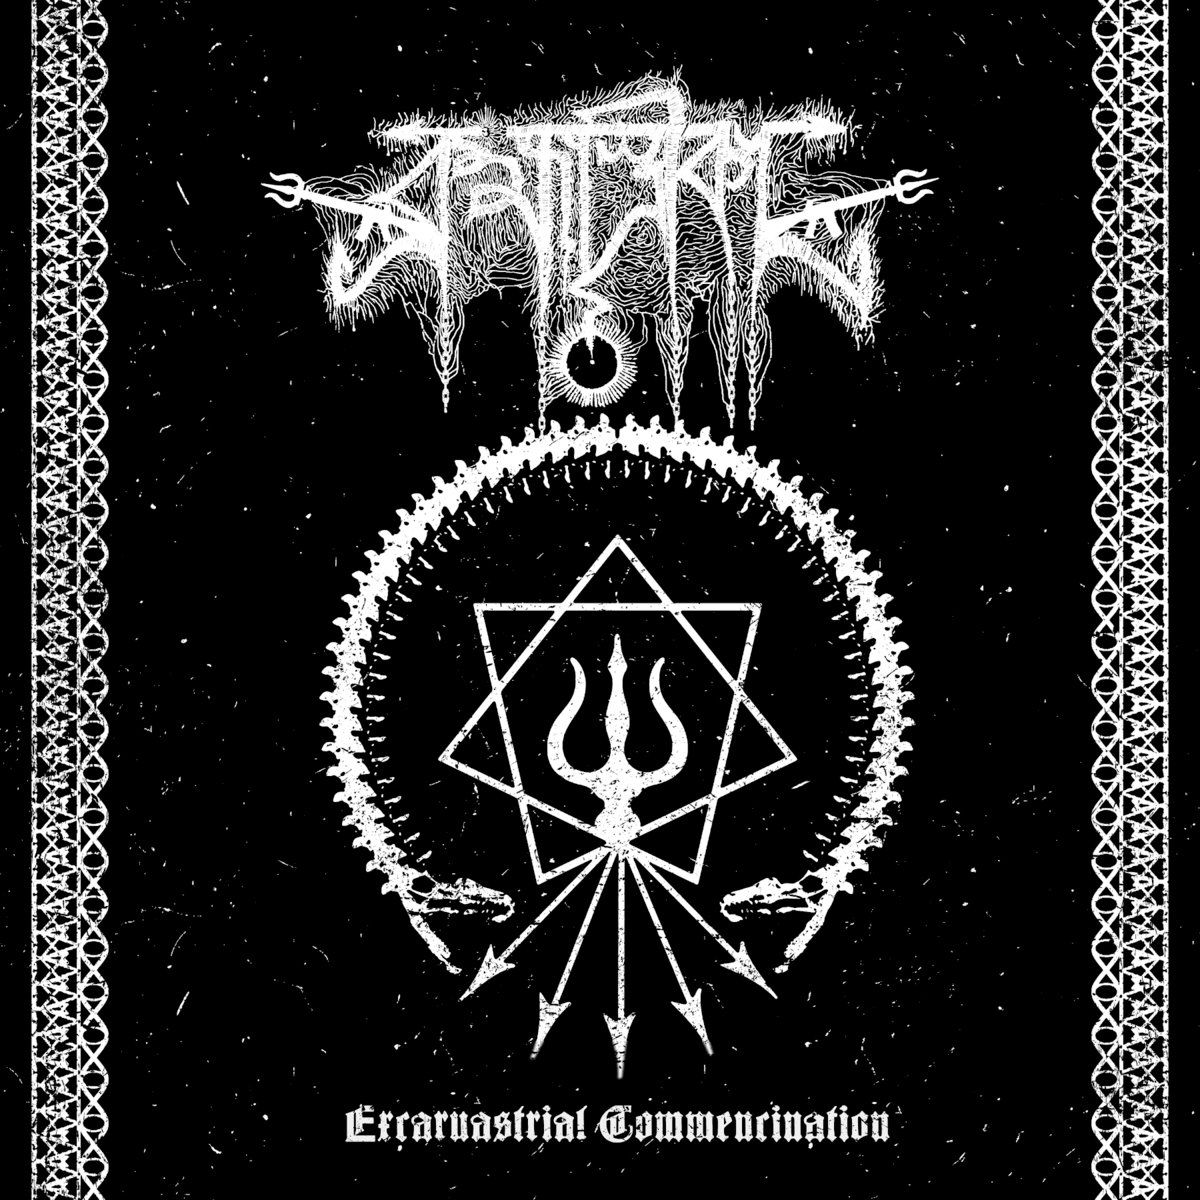 Review for Brahmastrika - Excarnastrial Commencination